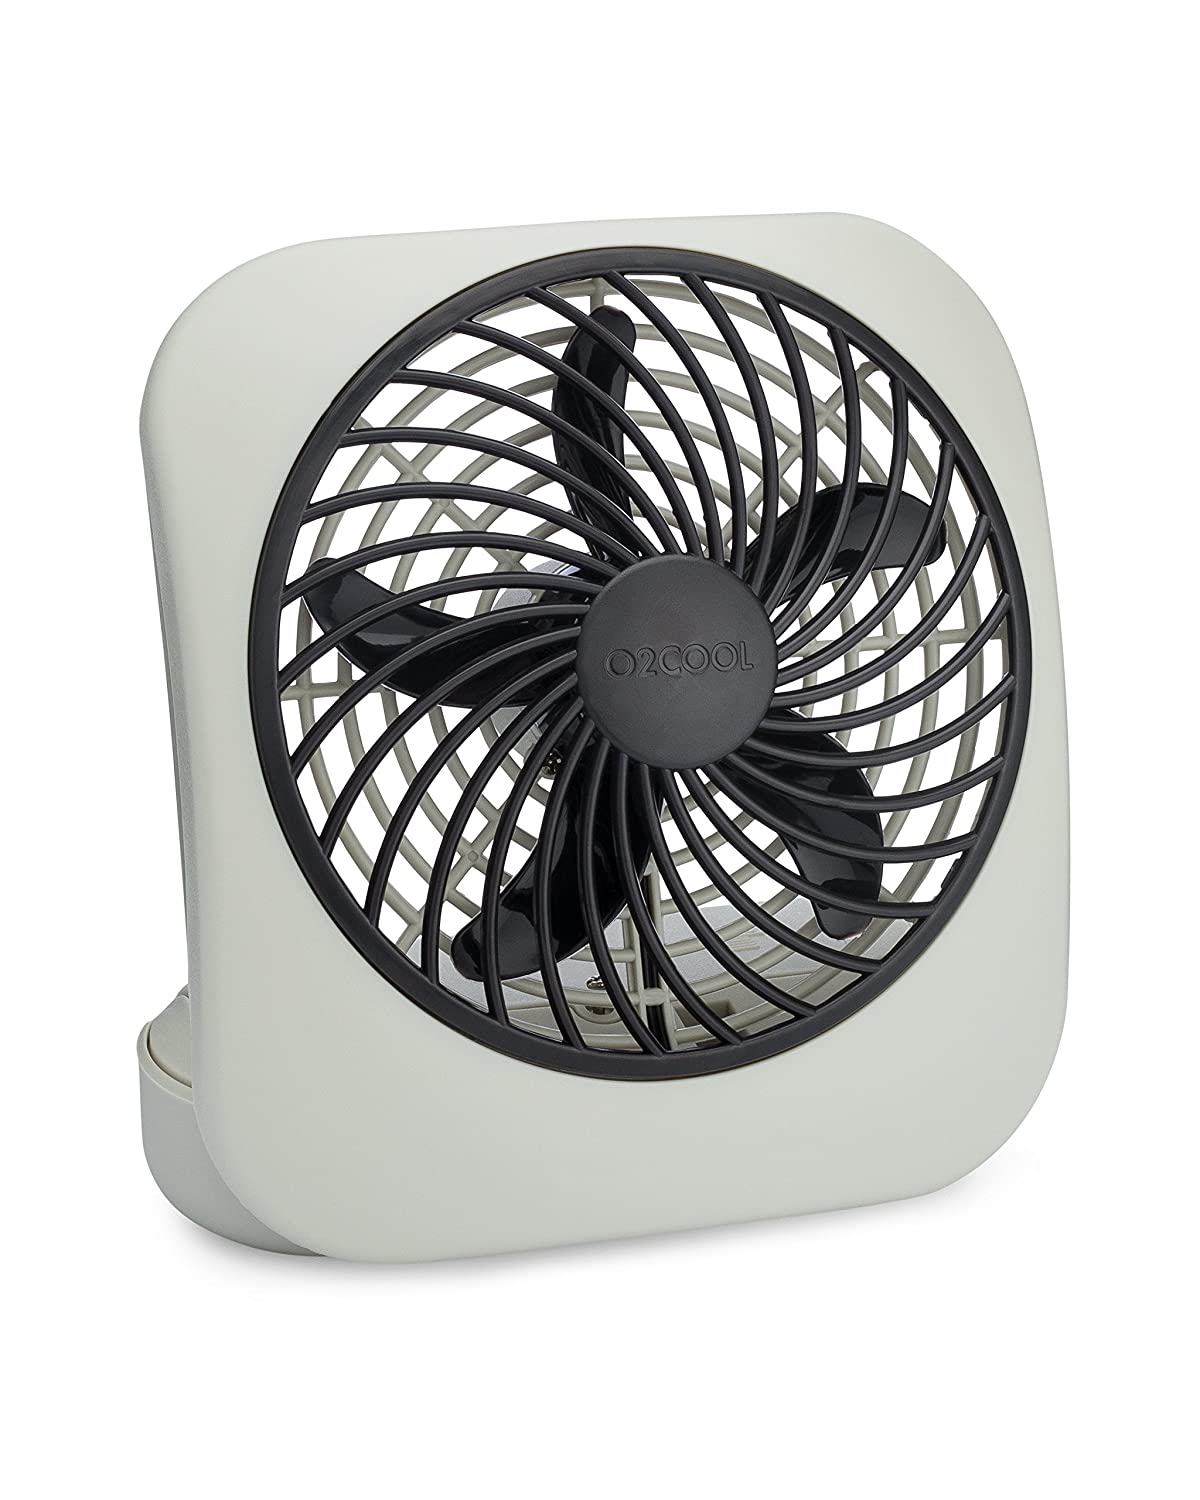 02-Cool Portable Mini Fan